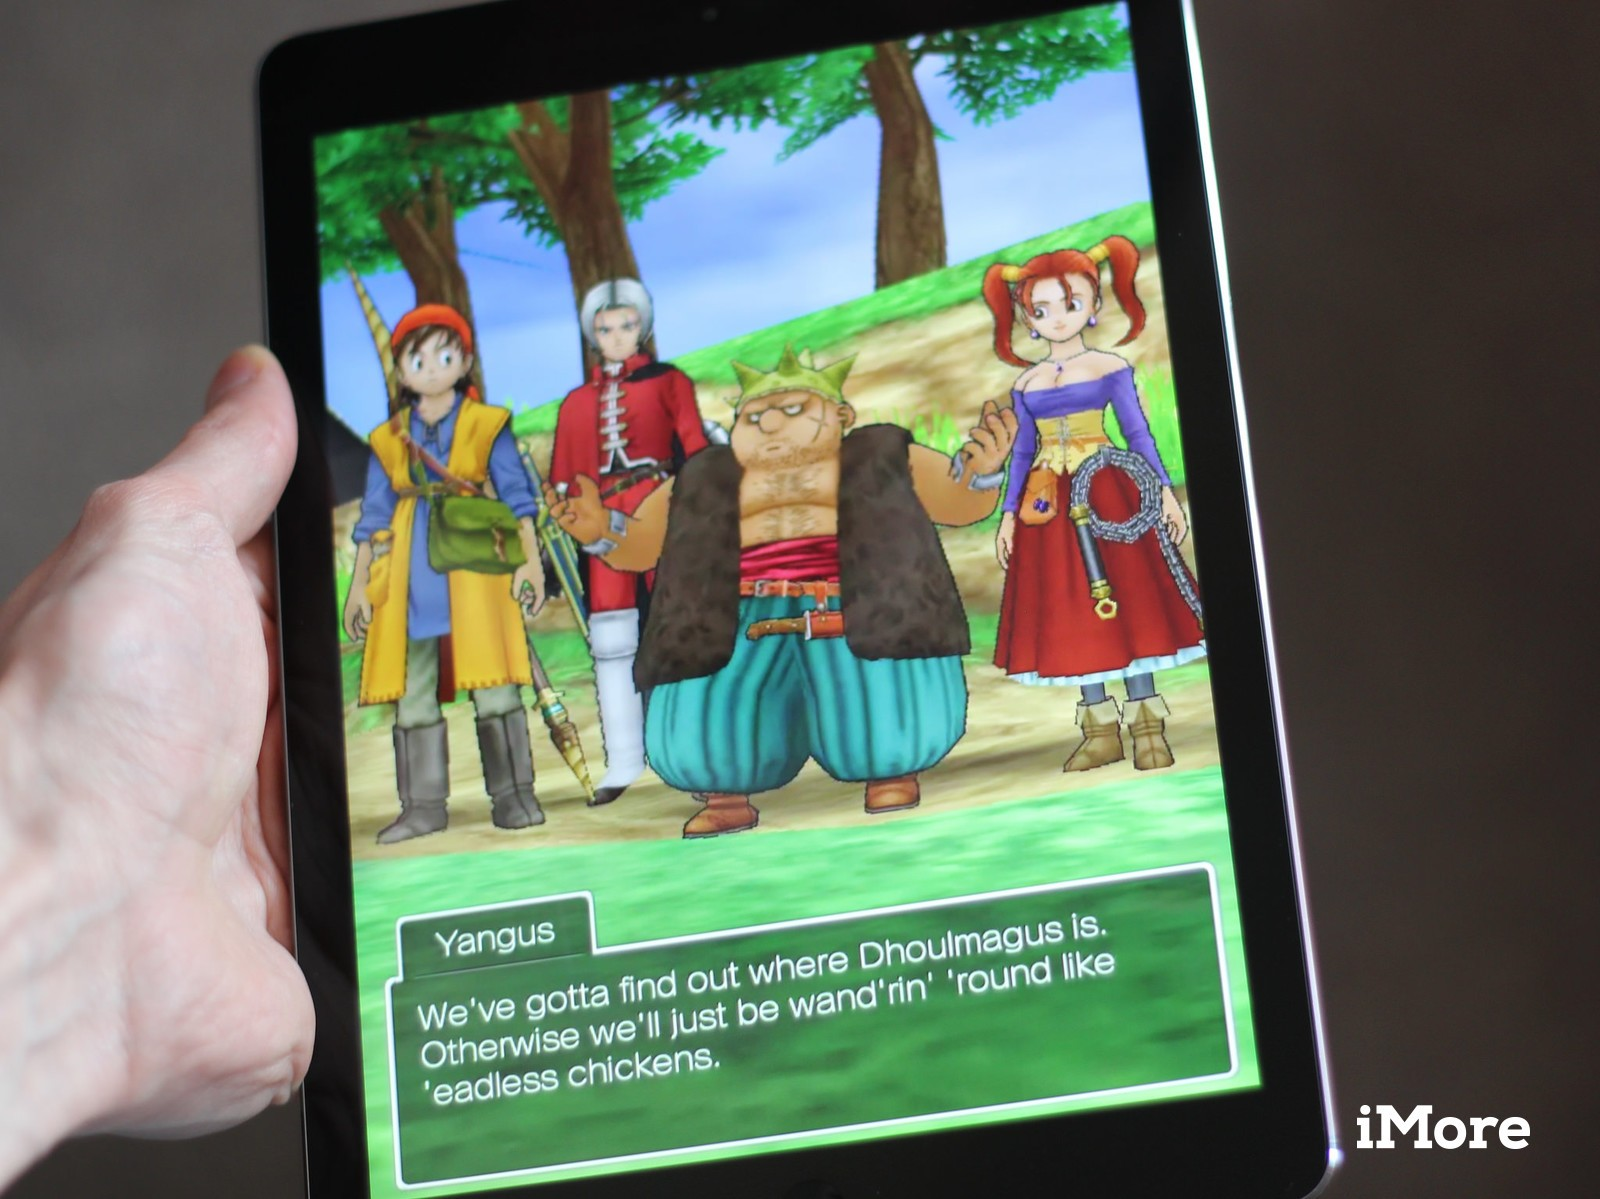 Revamped dragon quest viii rpg lands on ios imore dragon quest viii for ios gumiabroncs Gallery